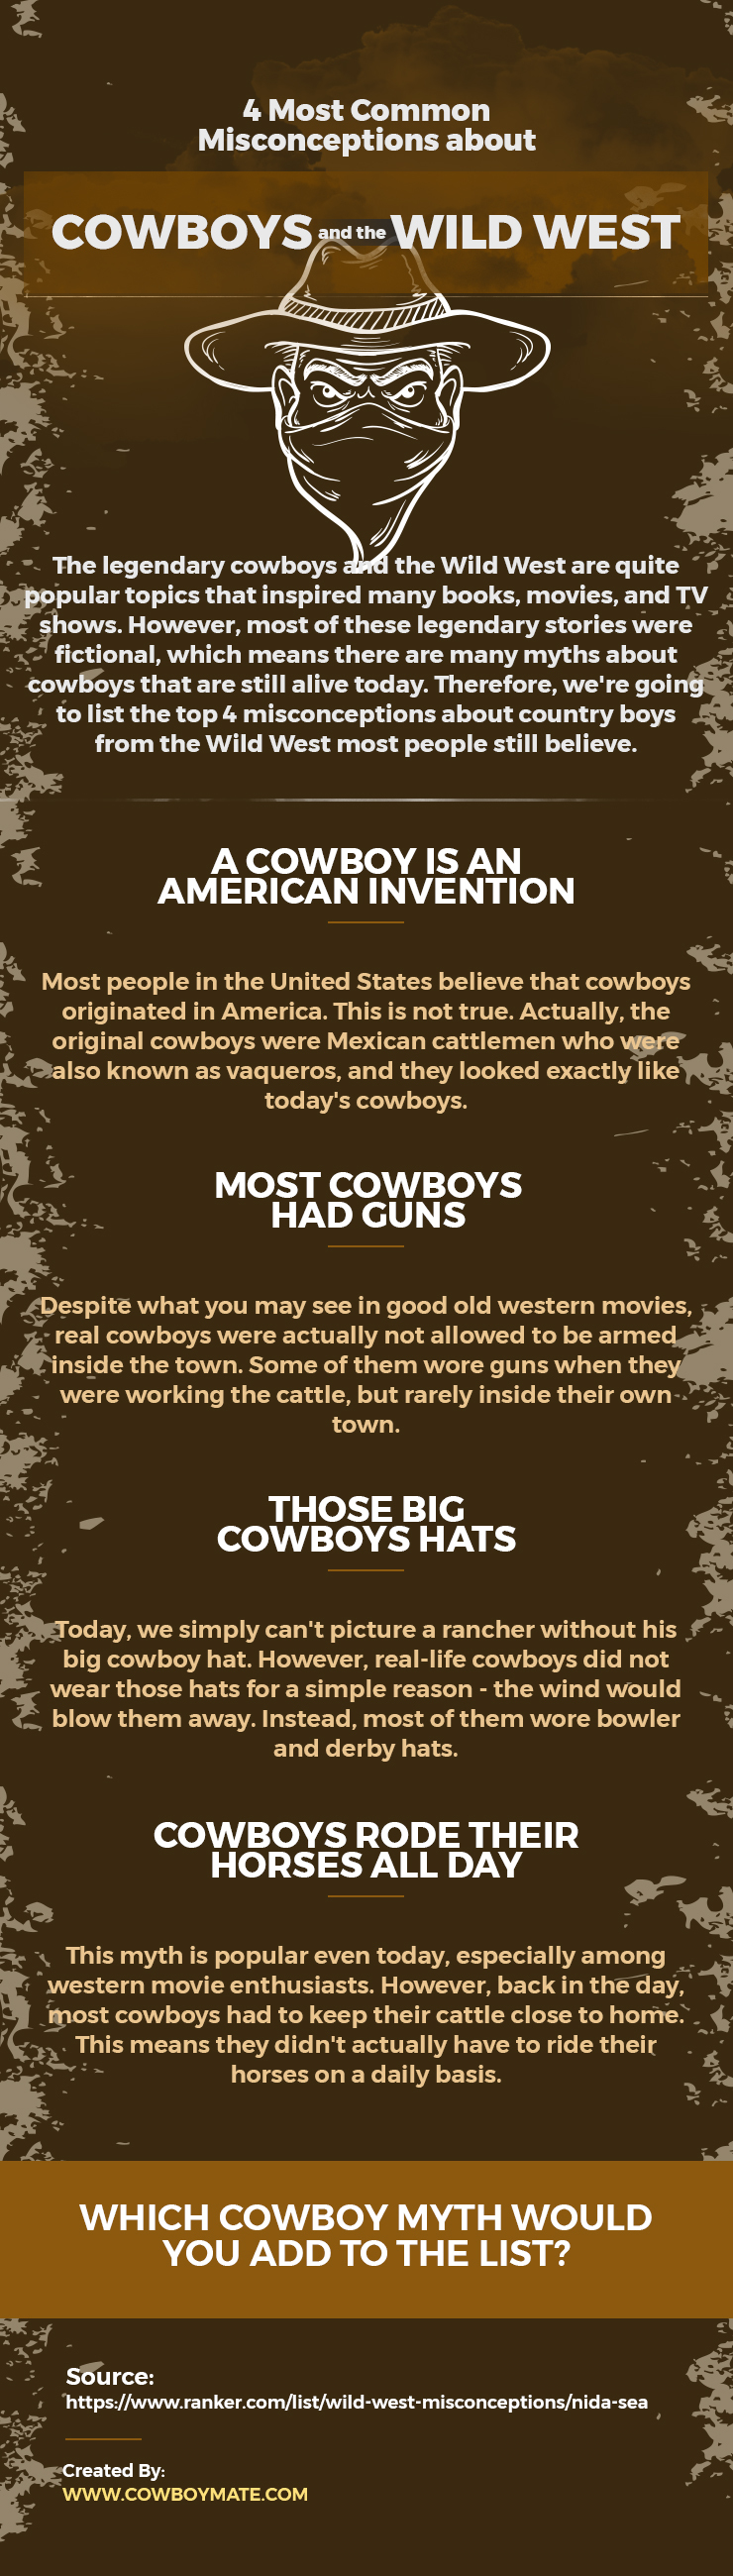 4 Most Common Misconceptions about Cowboys and the Wild West